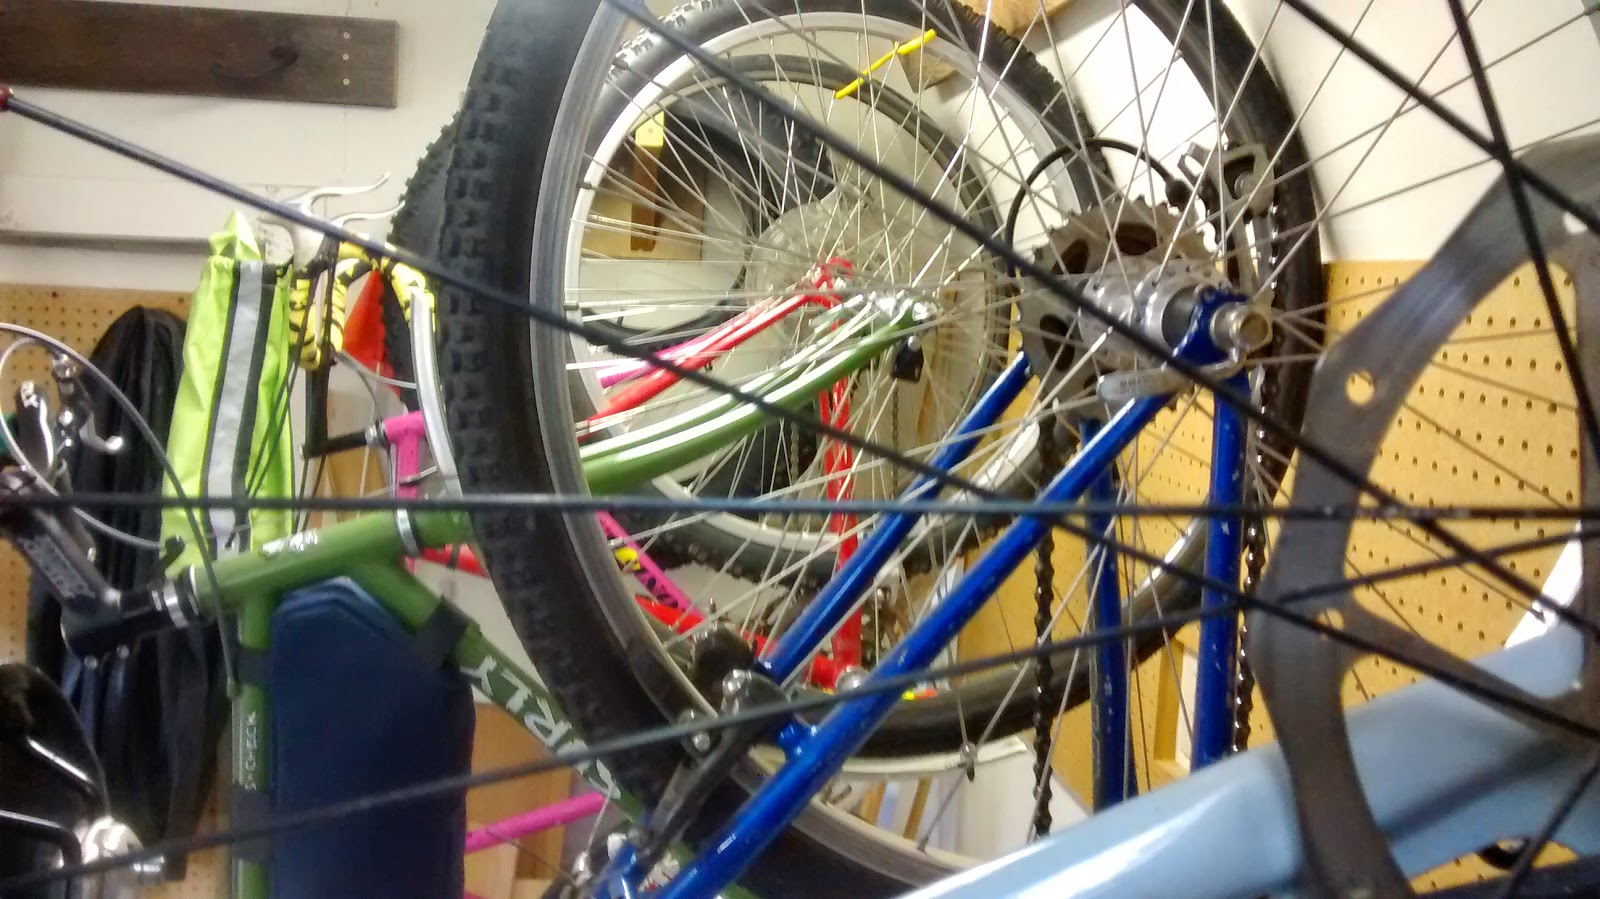 Thereu0027s always room for one more DIY hanging bike storage & Big Dummy Daddy: Thereu0027s always room for one more: DIY hanging bike ...